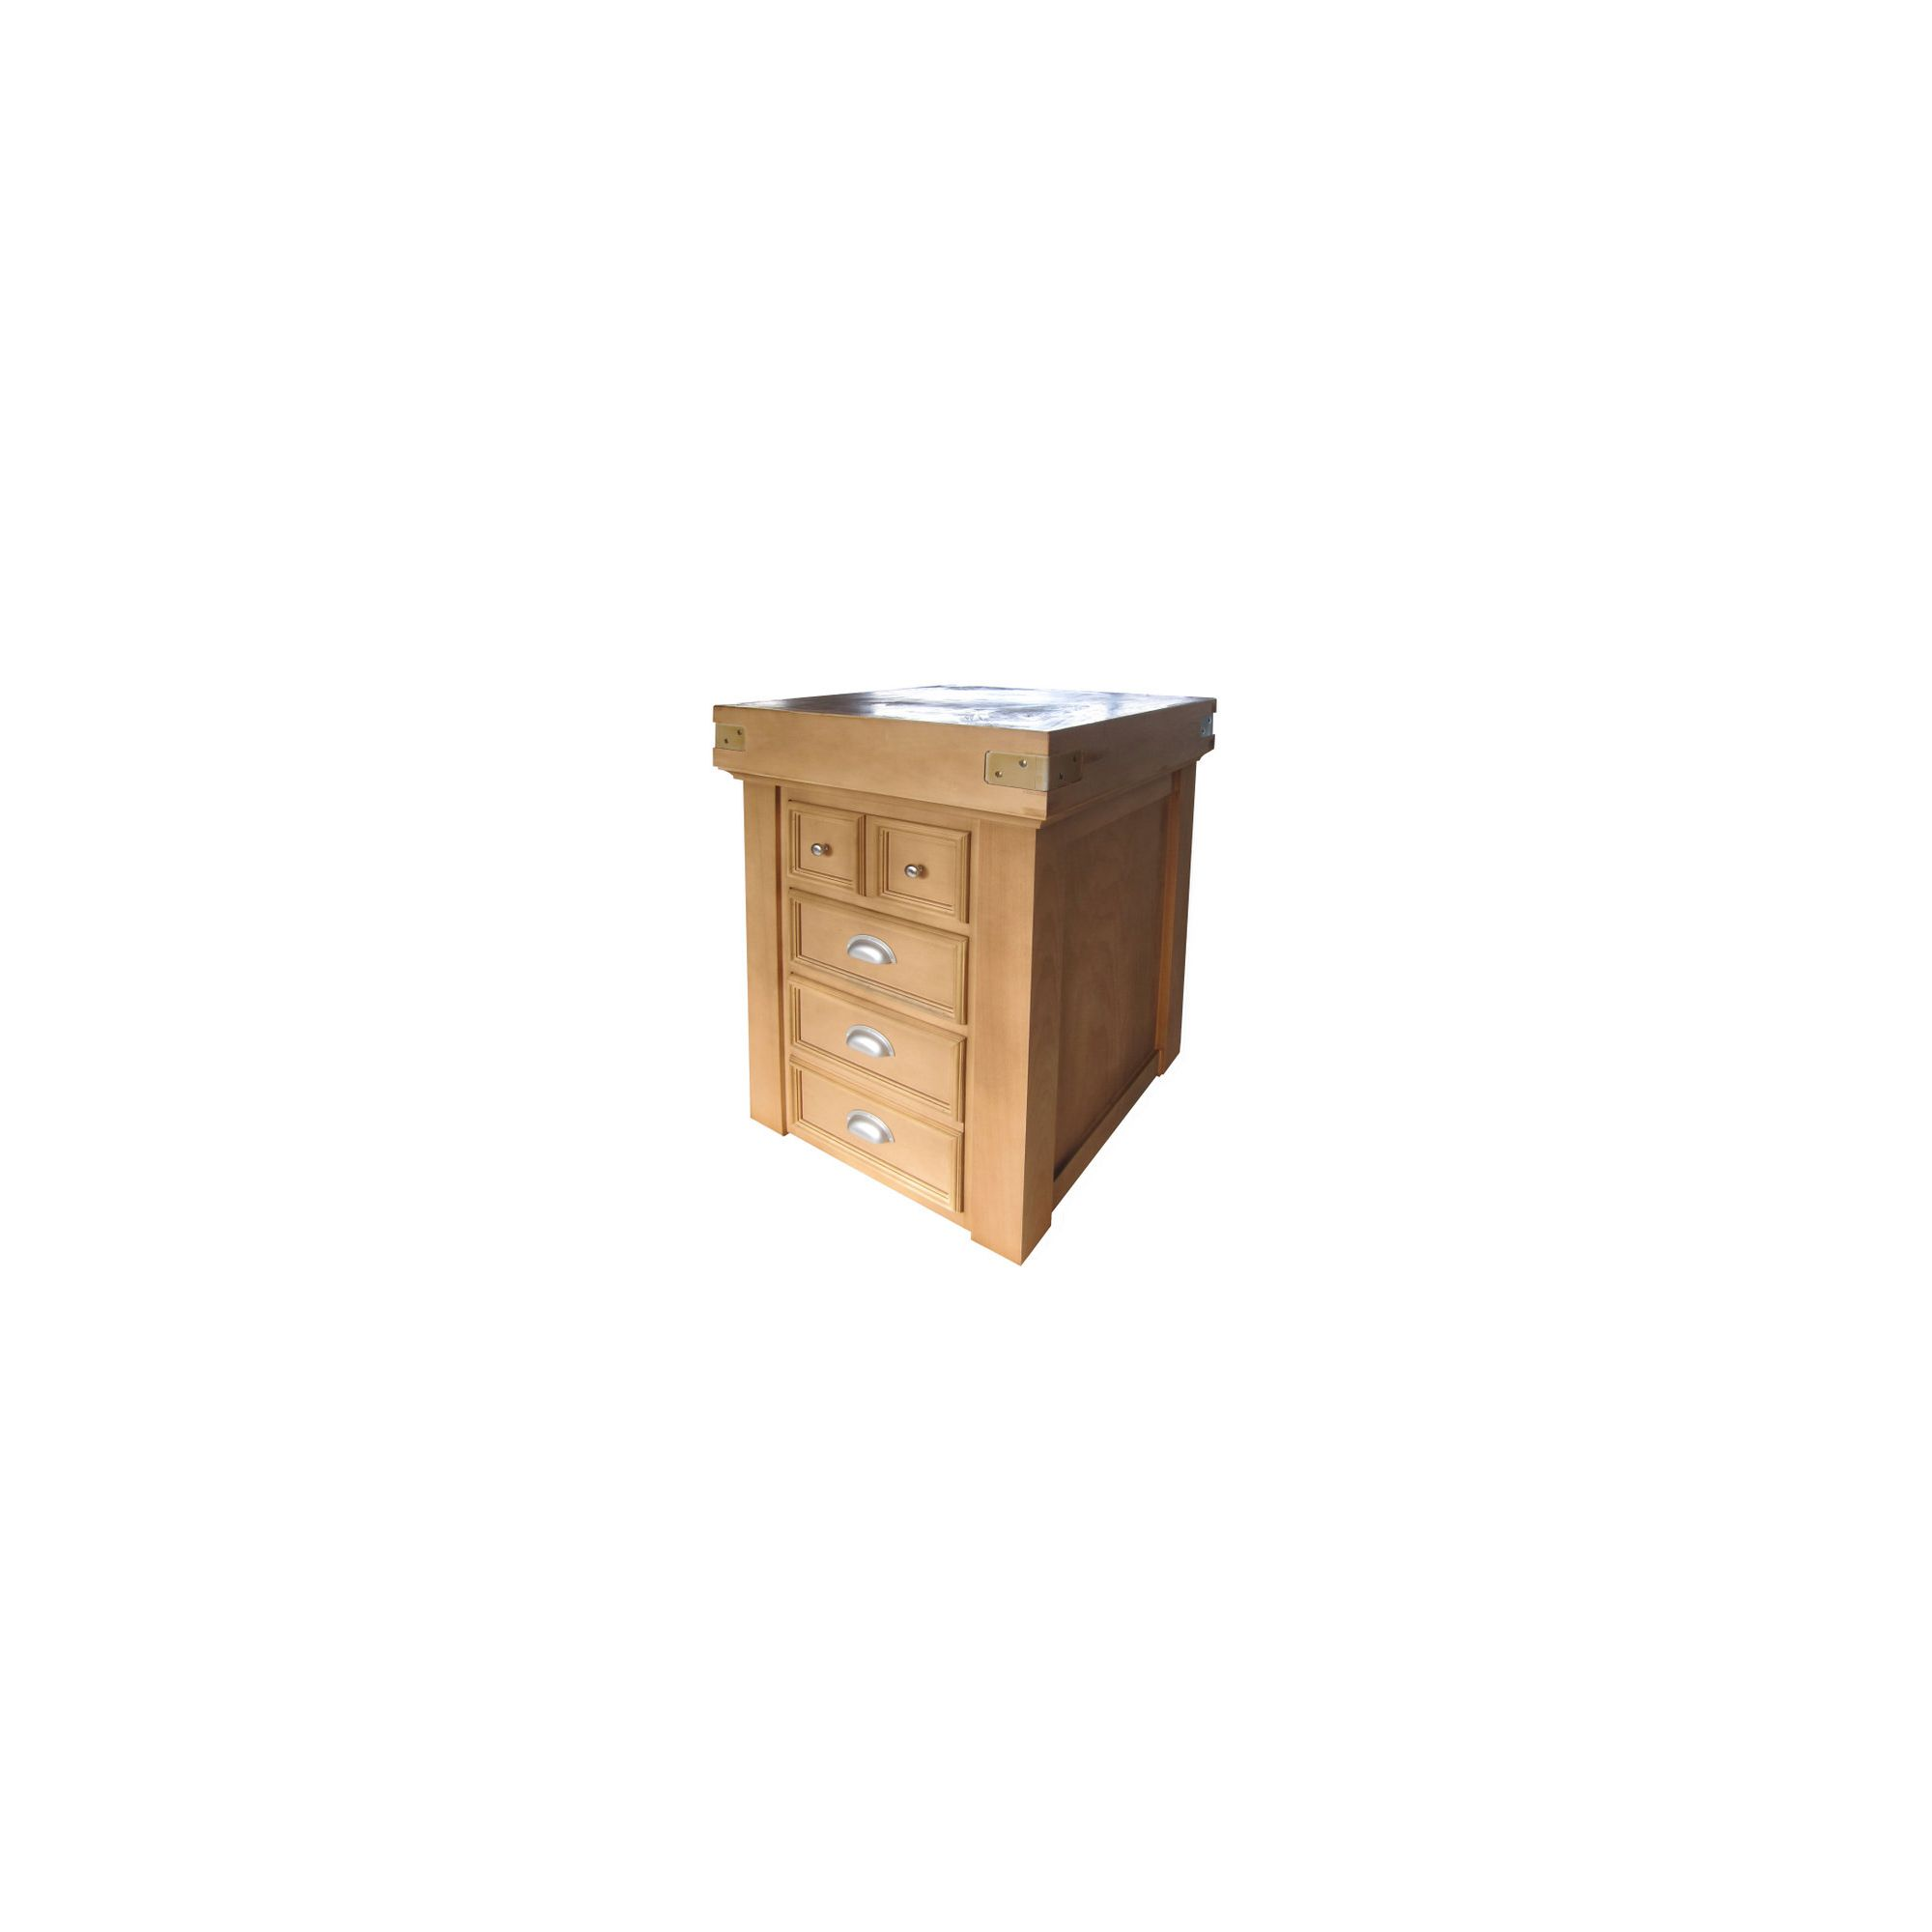 Chabret Traditional Drawers Block - 110cm X 60cm X 60cm at Tesco Direct